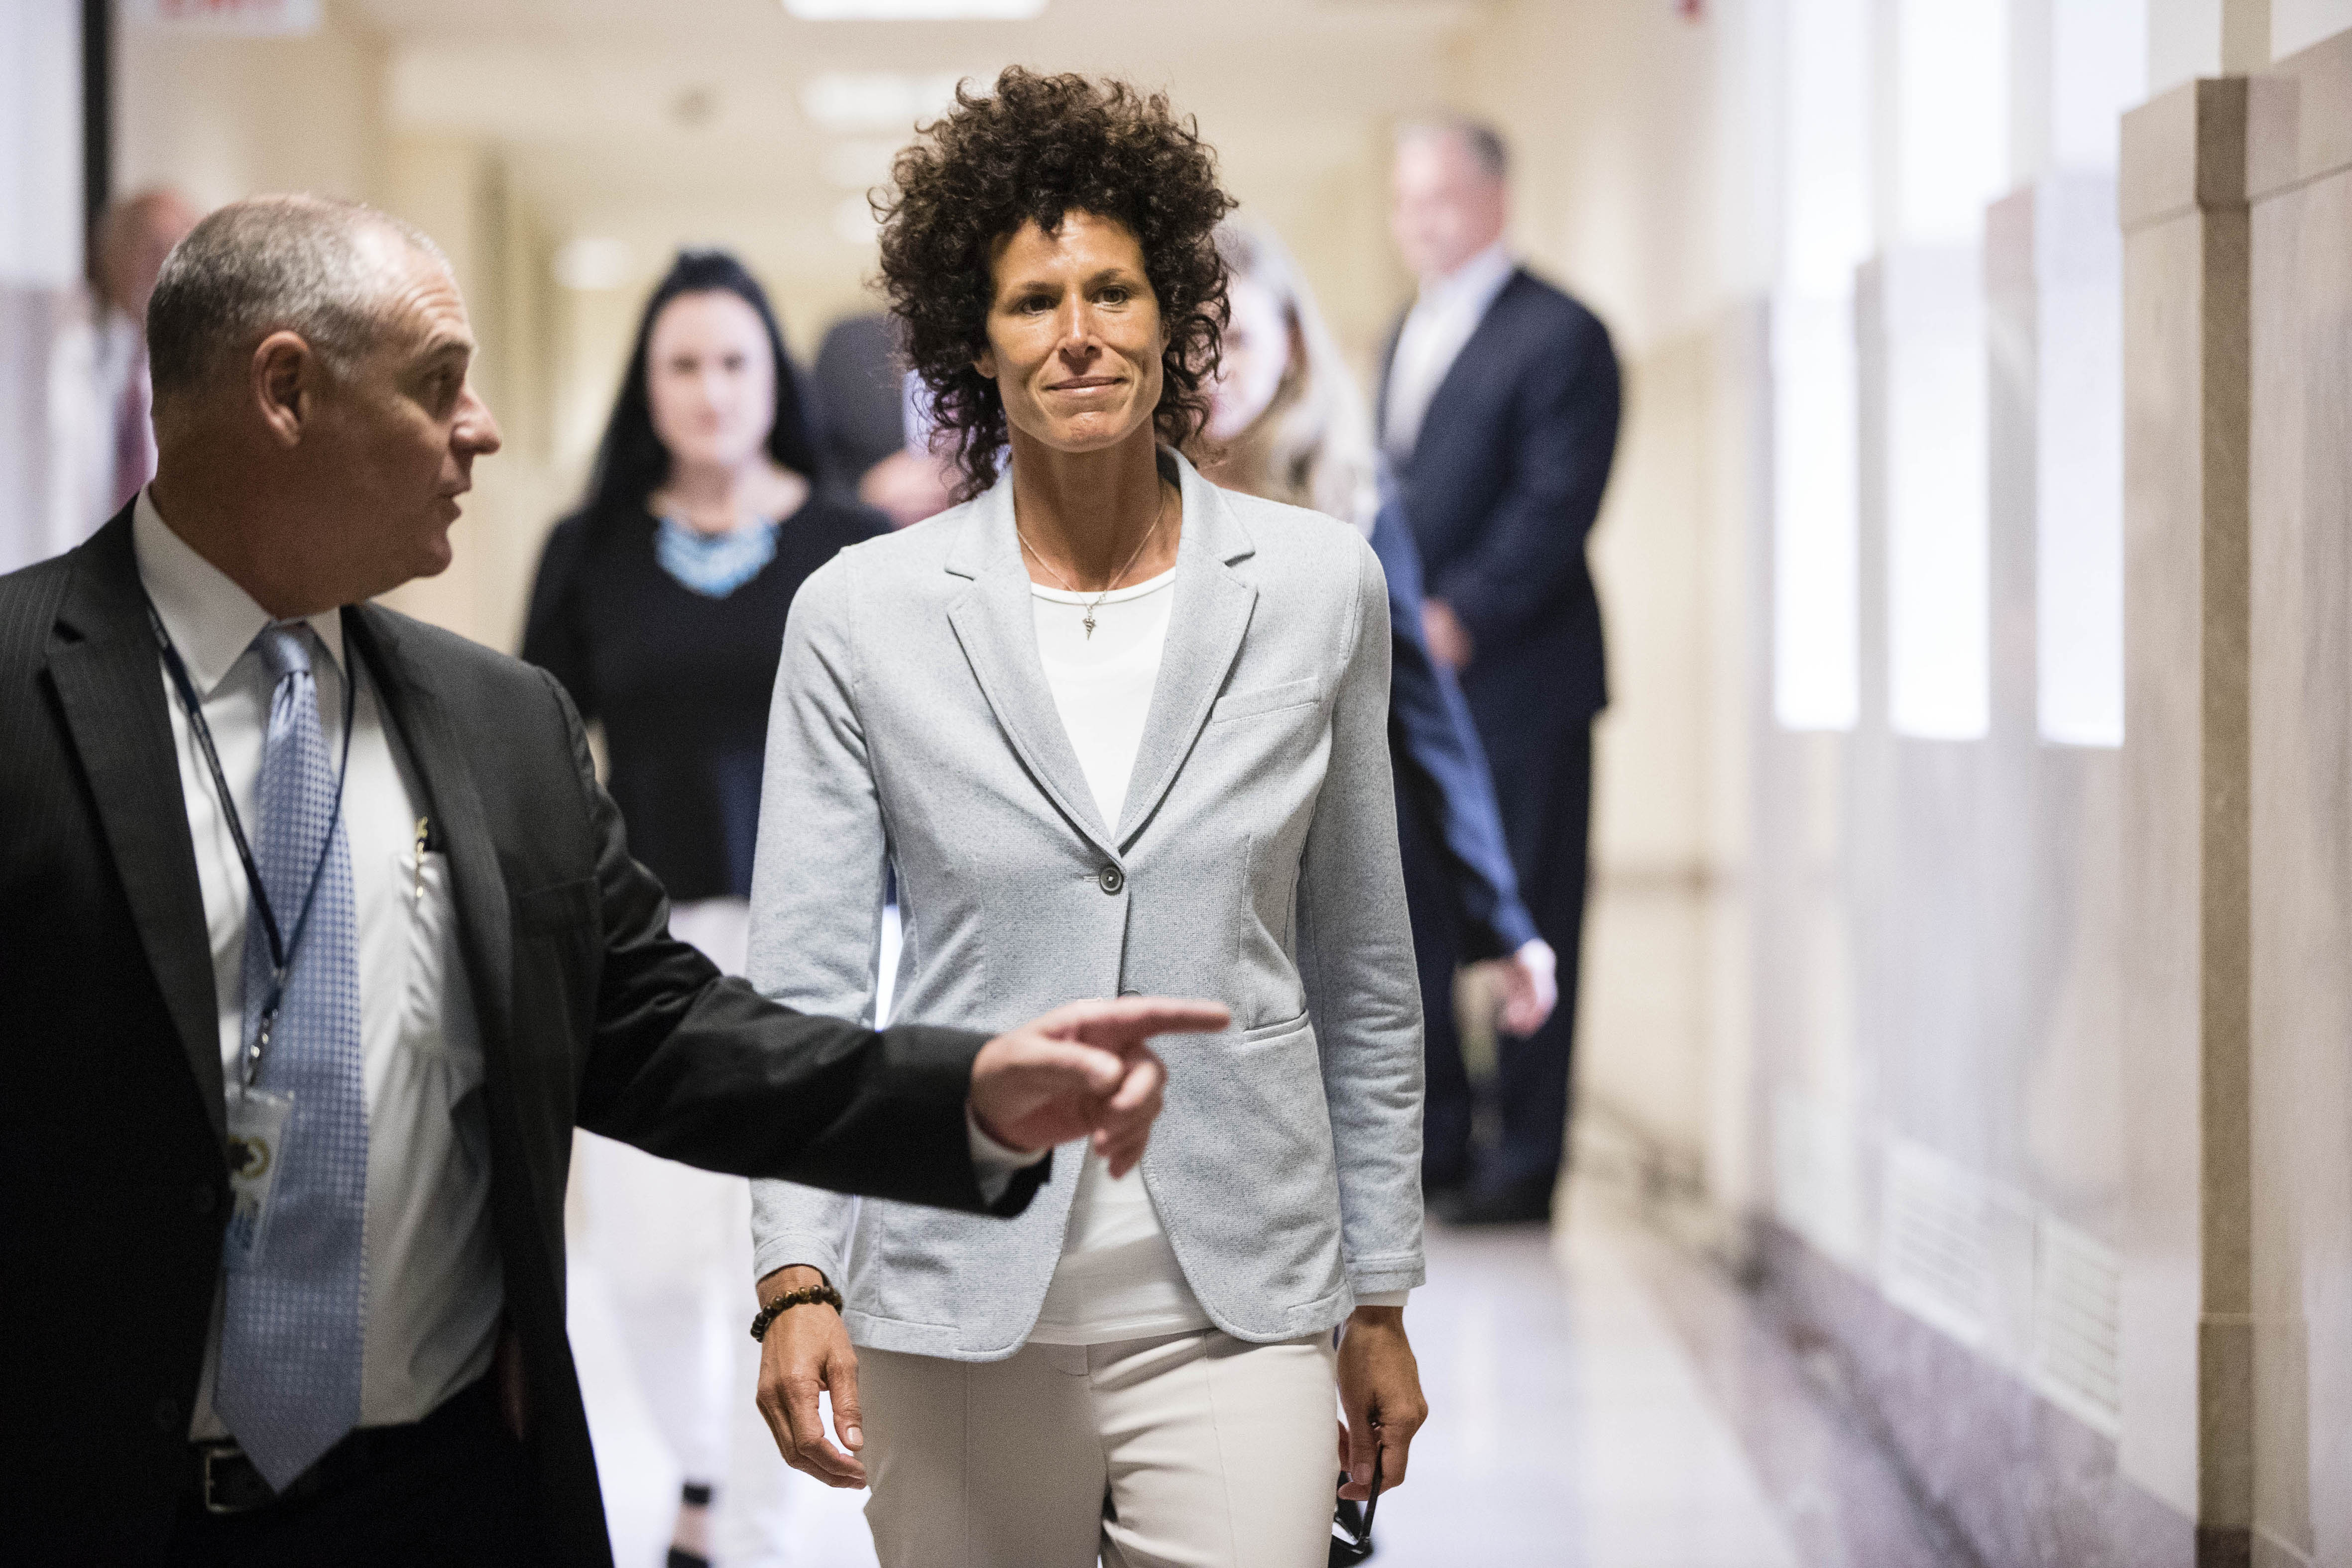 Andrea Constand, whom prosecutors say Bill Cosby sexually assaulted, walks to the courtroom during Cosby's trial at the Montgomery County Courthouse, in Norristown, Pennsylvania, June 6.